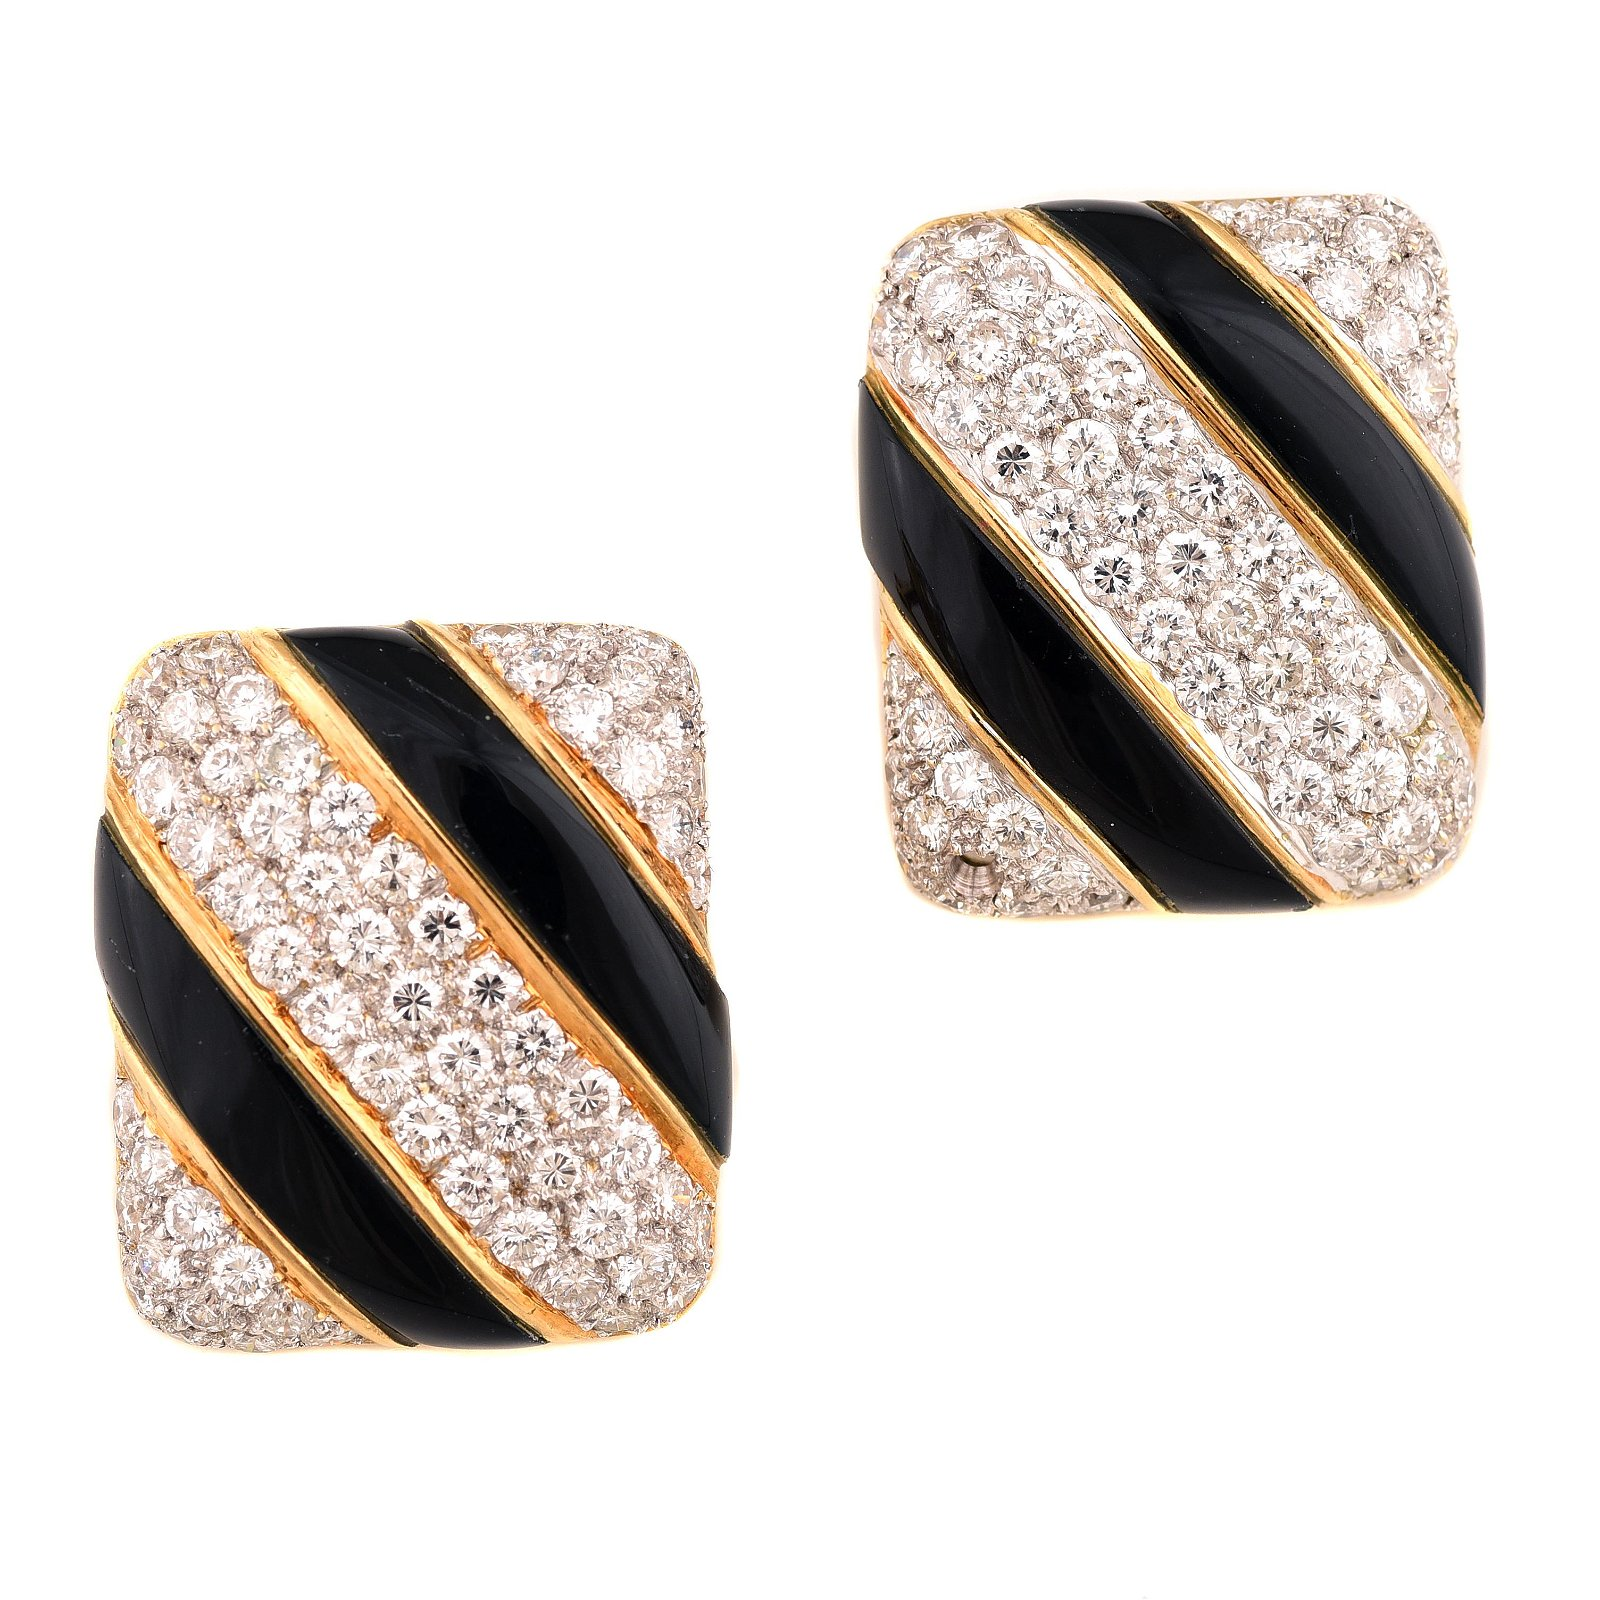 Pair of Diamond, Black Onyx, 18k Yellow Gold Ear Clips.